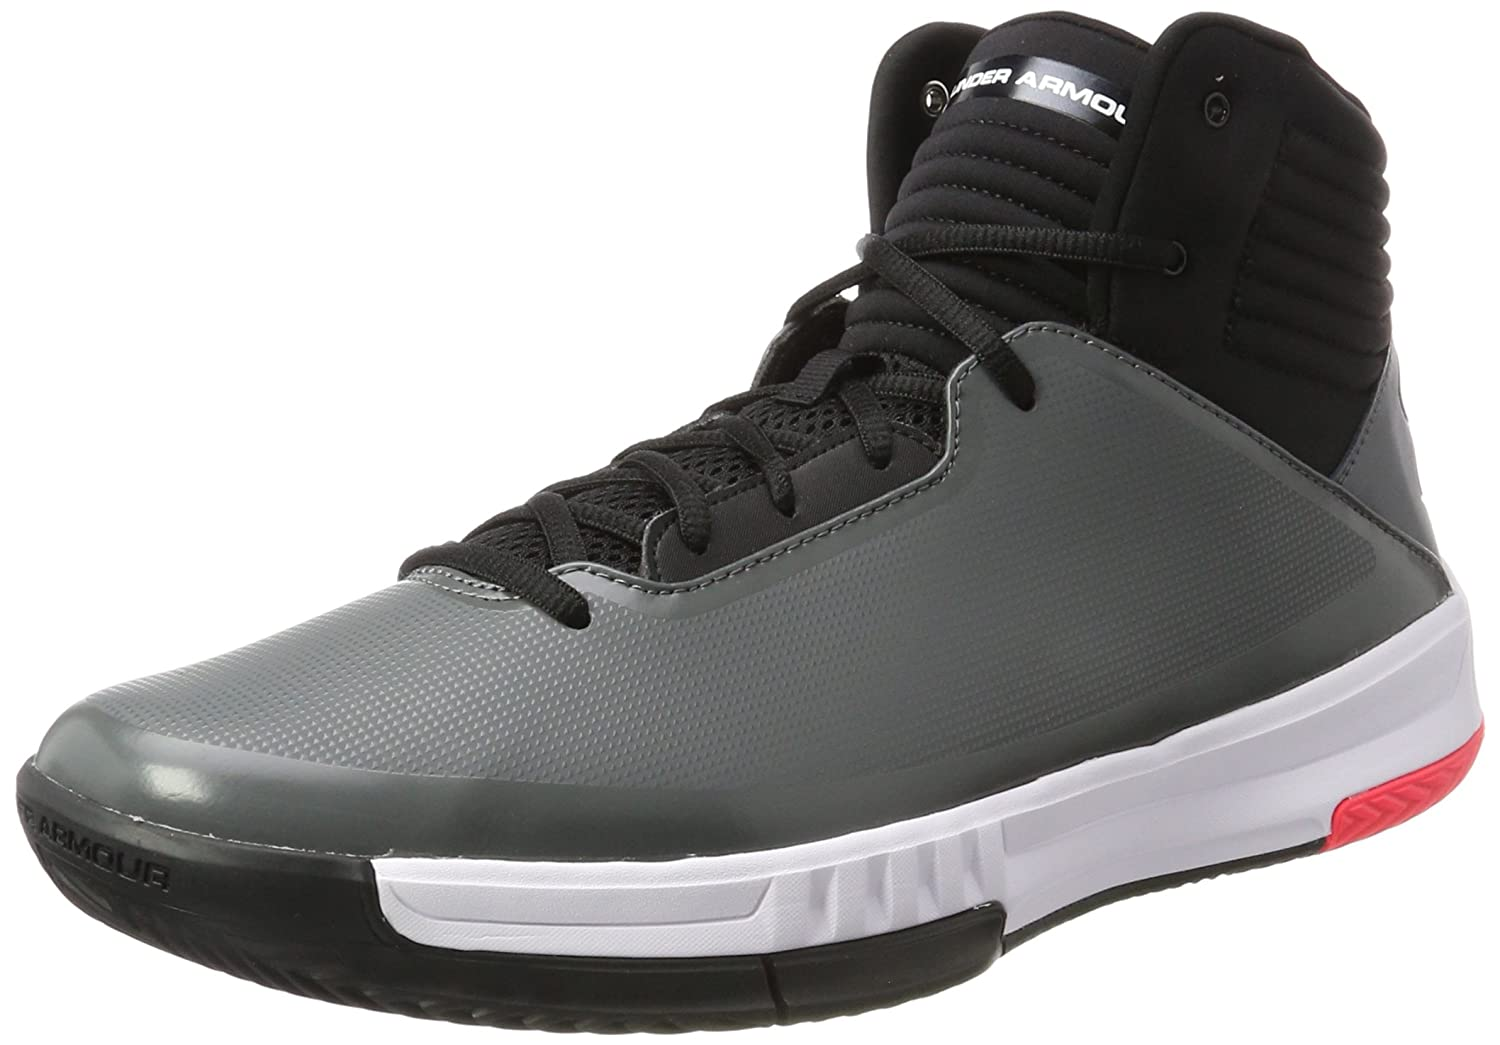 Under Armour Men's Lockdown 2 Basketball Shoe B01MYZKJUO 10.5 D(M) US|Graphite/Black/Black